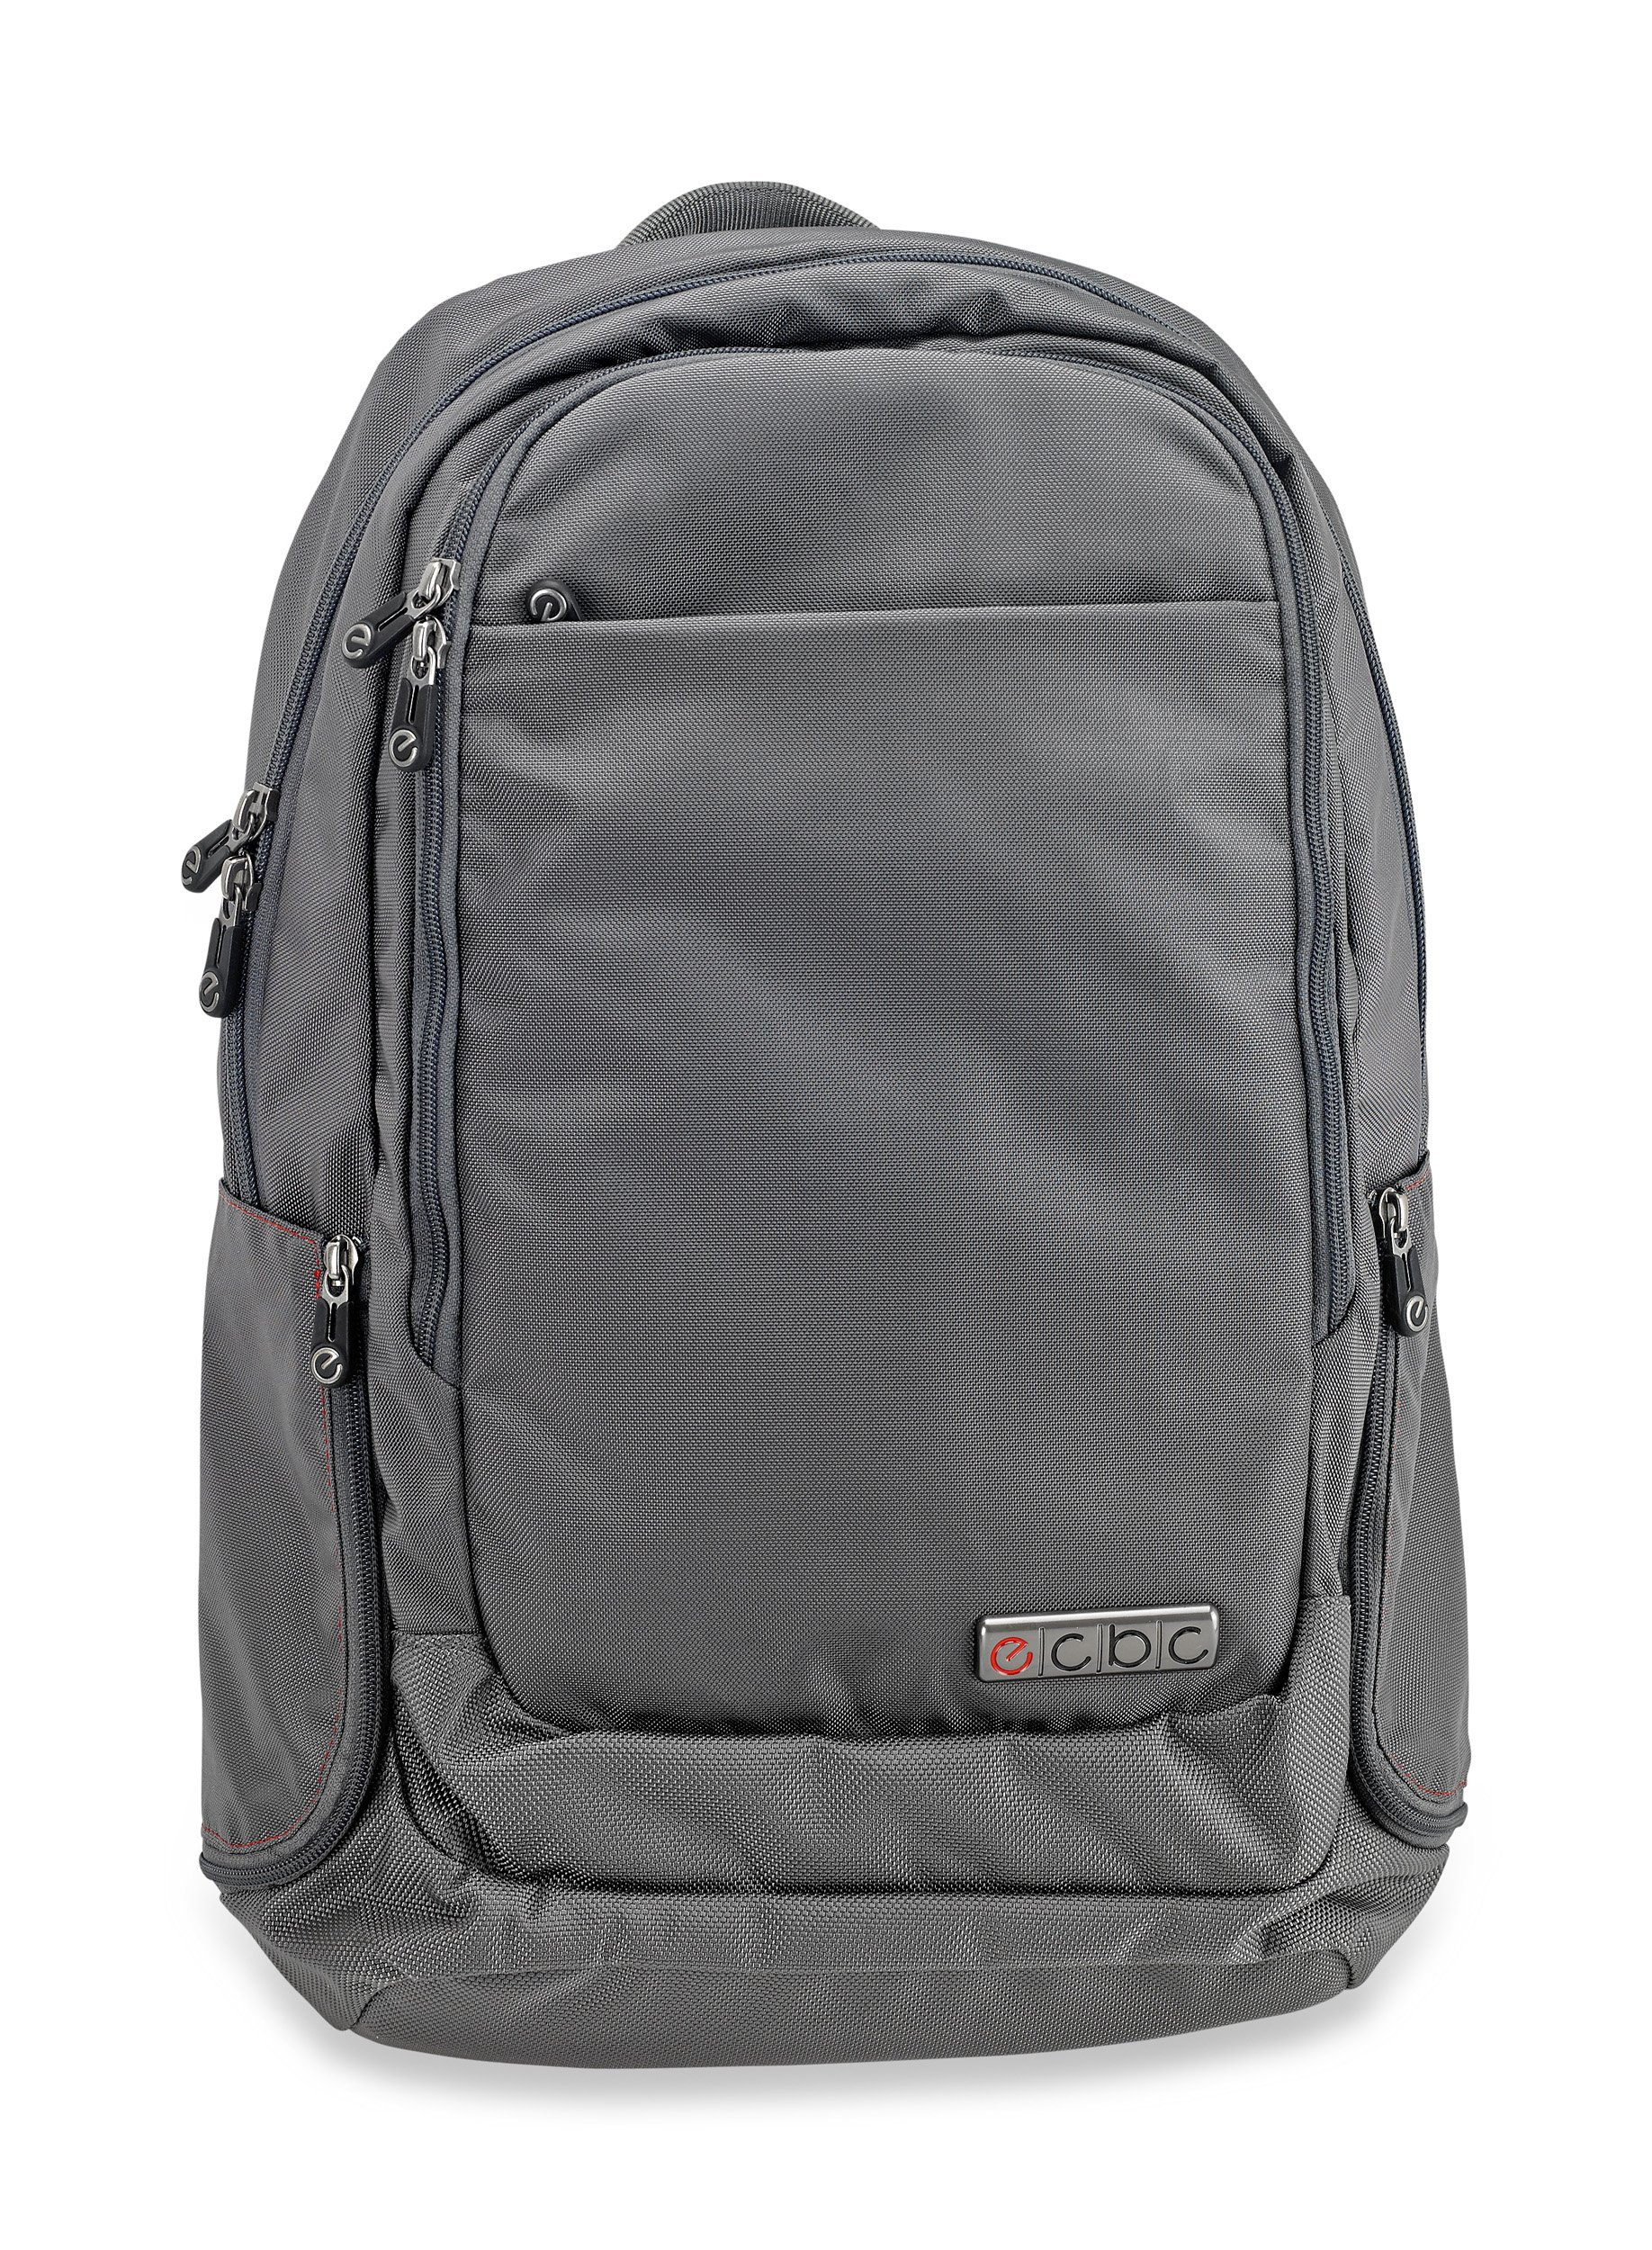 ECBC Backpack Computer Bag - Harpoon Daypack for Laptops, MacBooks & Devices Up to 16.5'' - Travel, School or Business Backpack for Men & Women - Premium Quality, Lightweight Design - Grey (B7101-30)